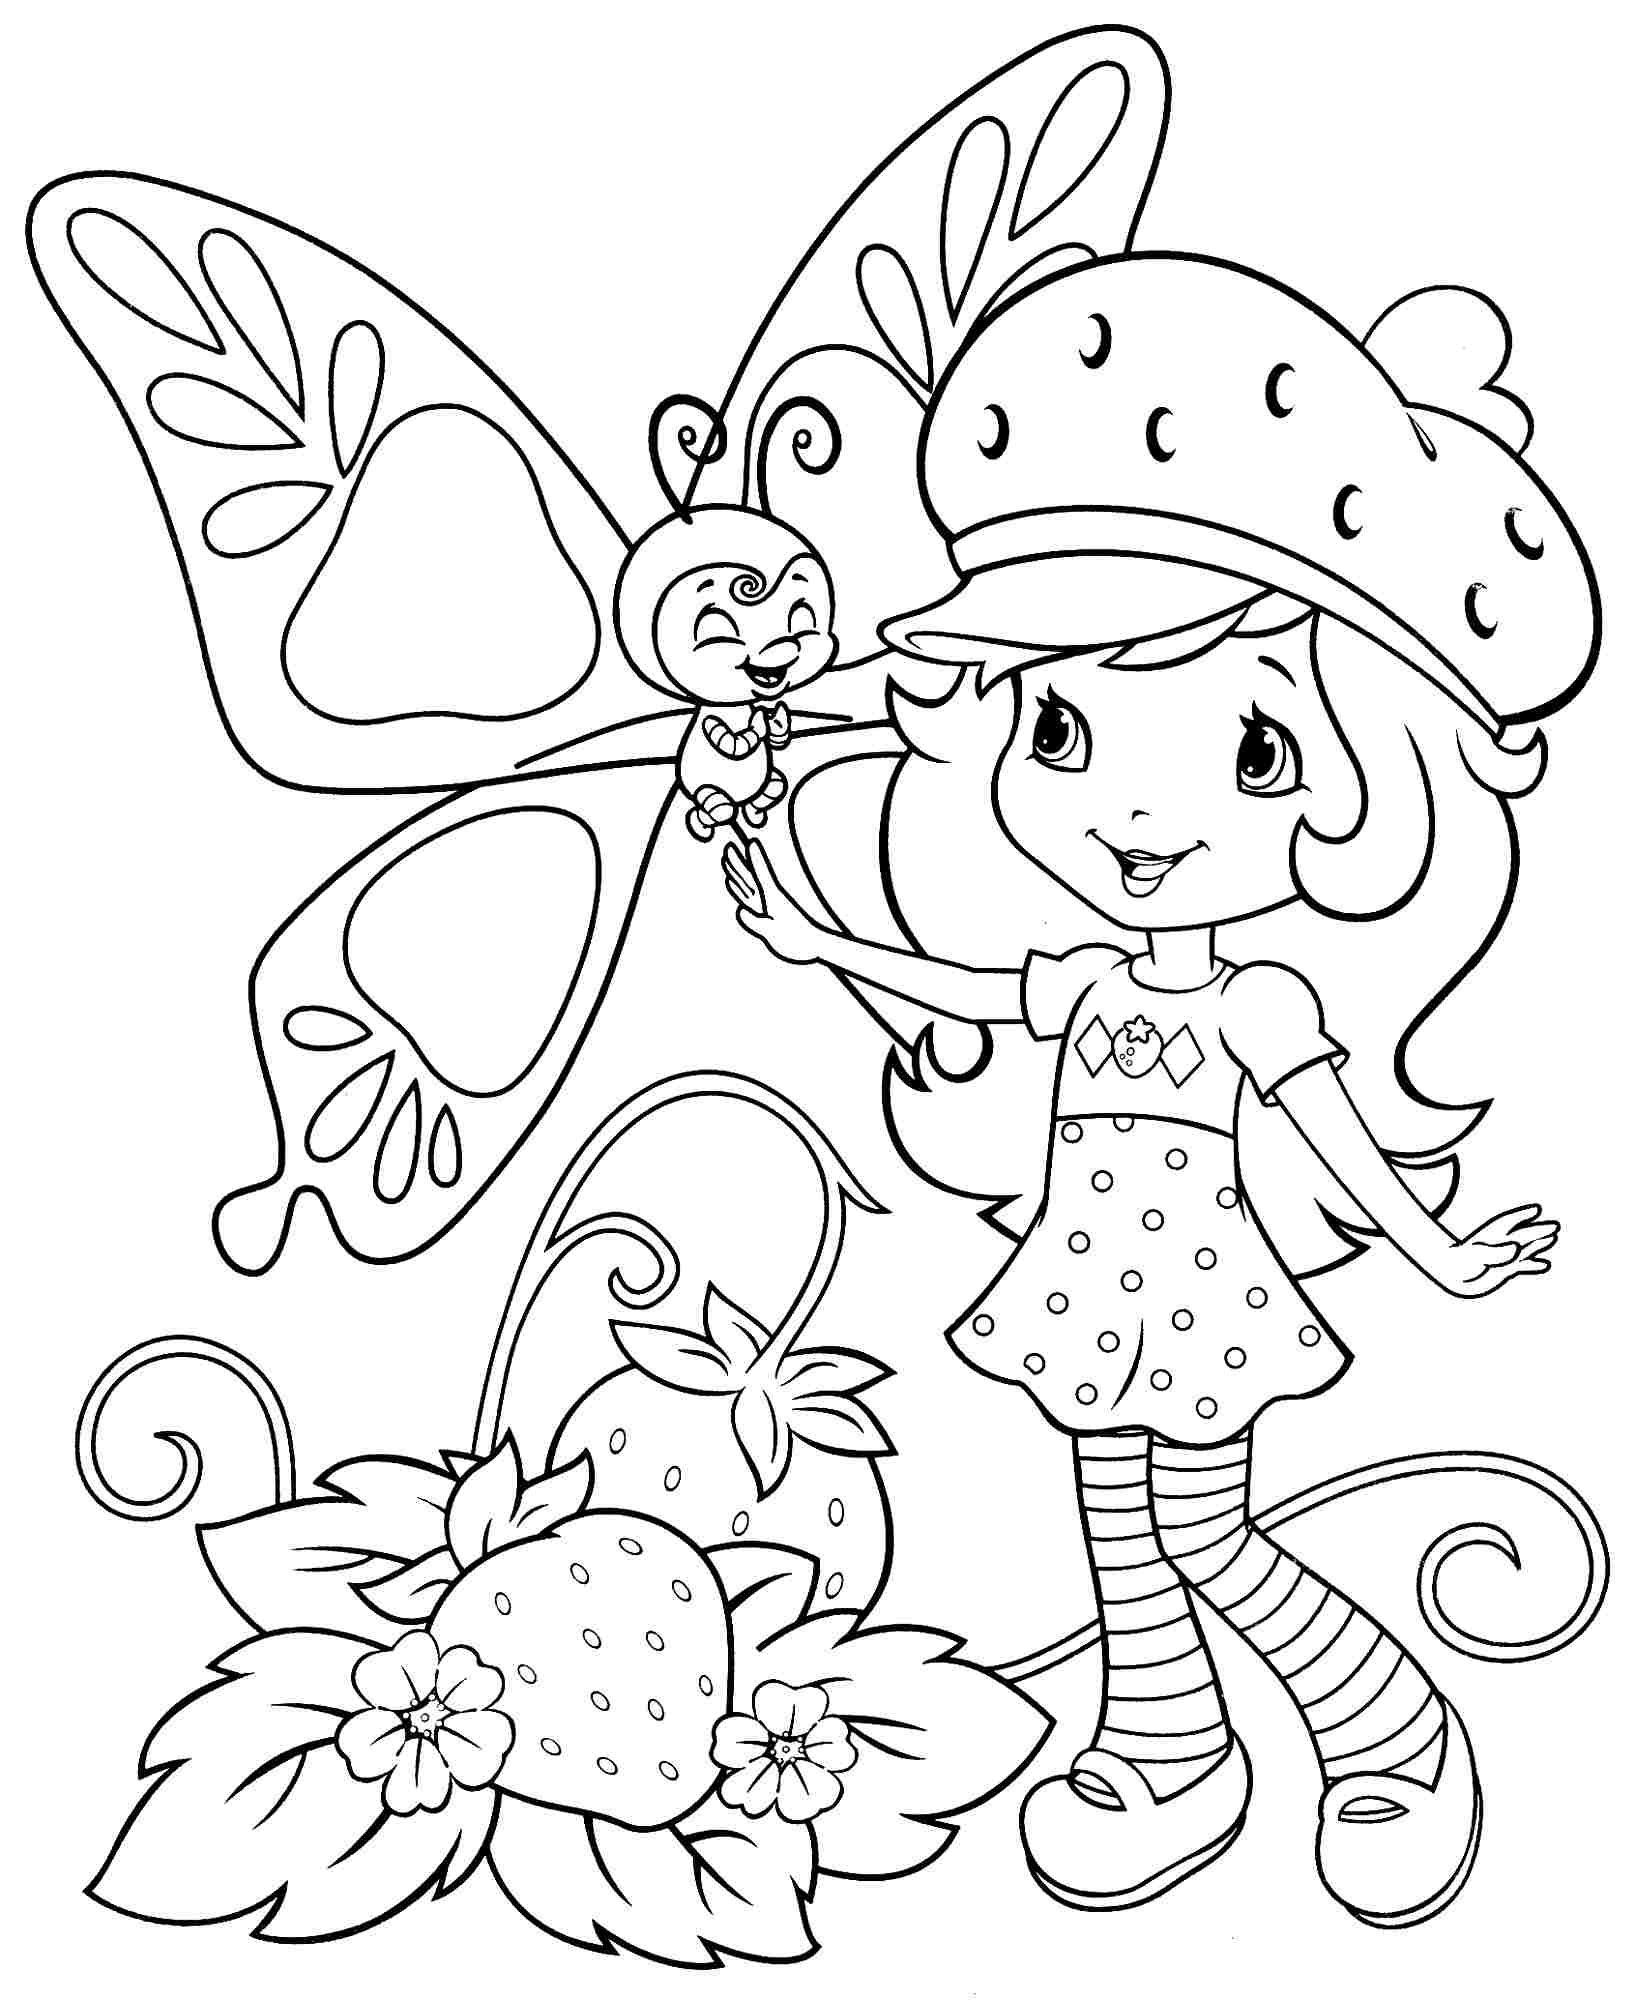 Free Coloring Sheets Free Cartoon Strawberry Shortcake For Kids For Boys Girls 25658 Free Coloring Sheets Free Cartoons Coloring Sheets